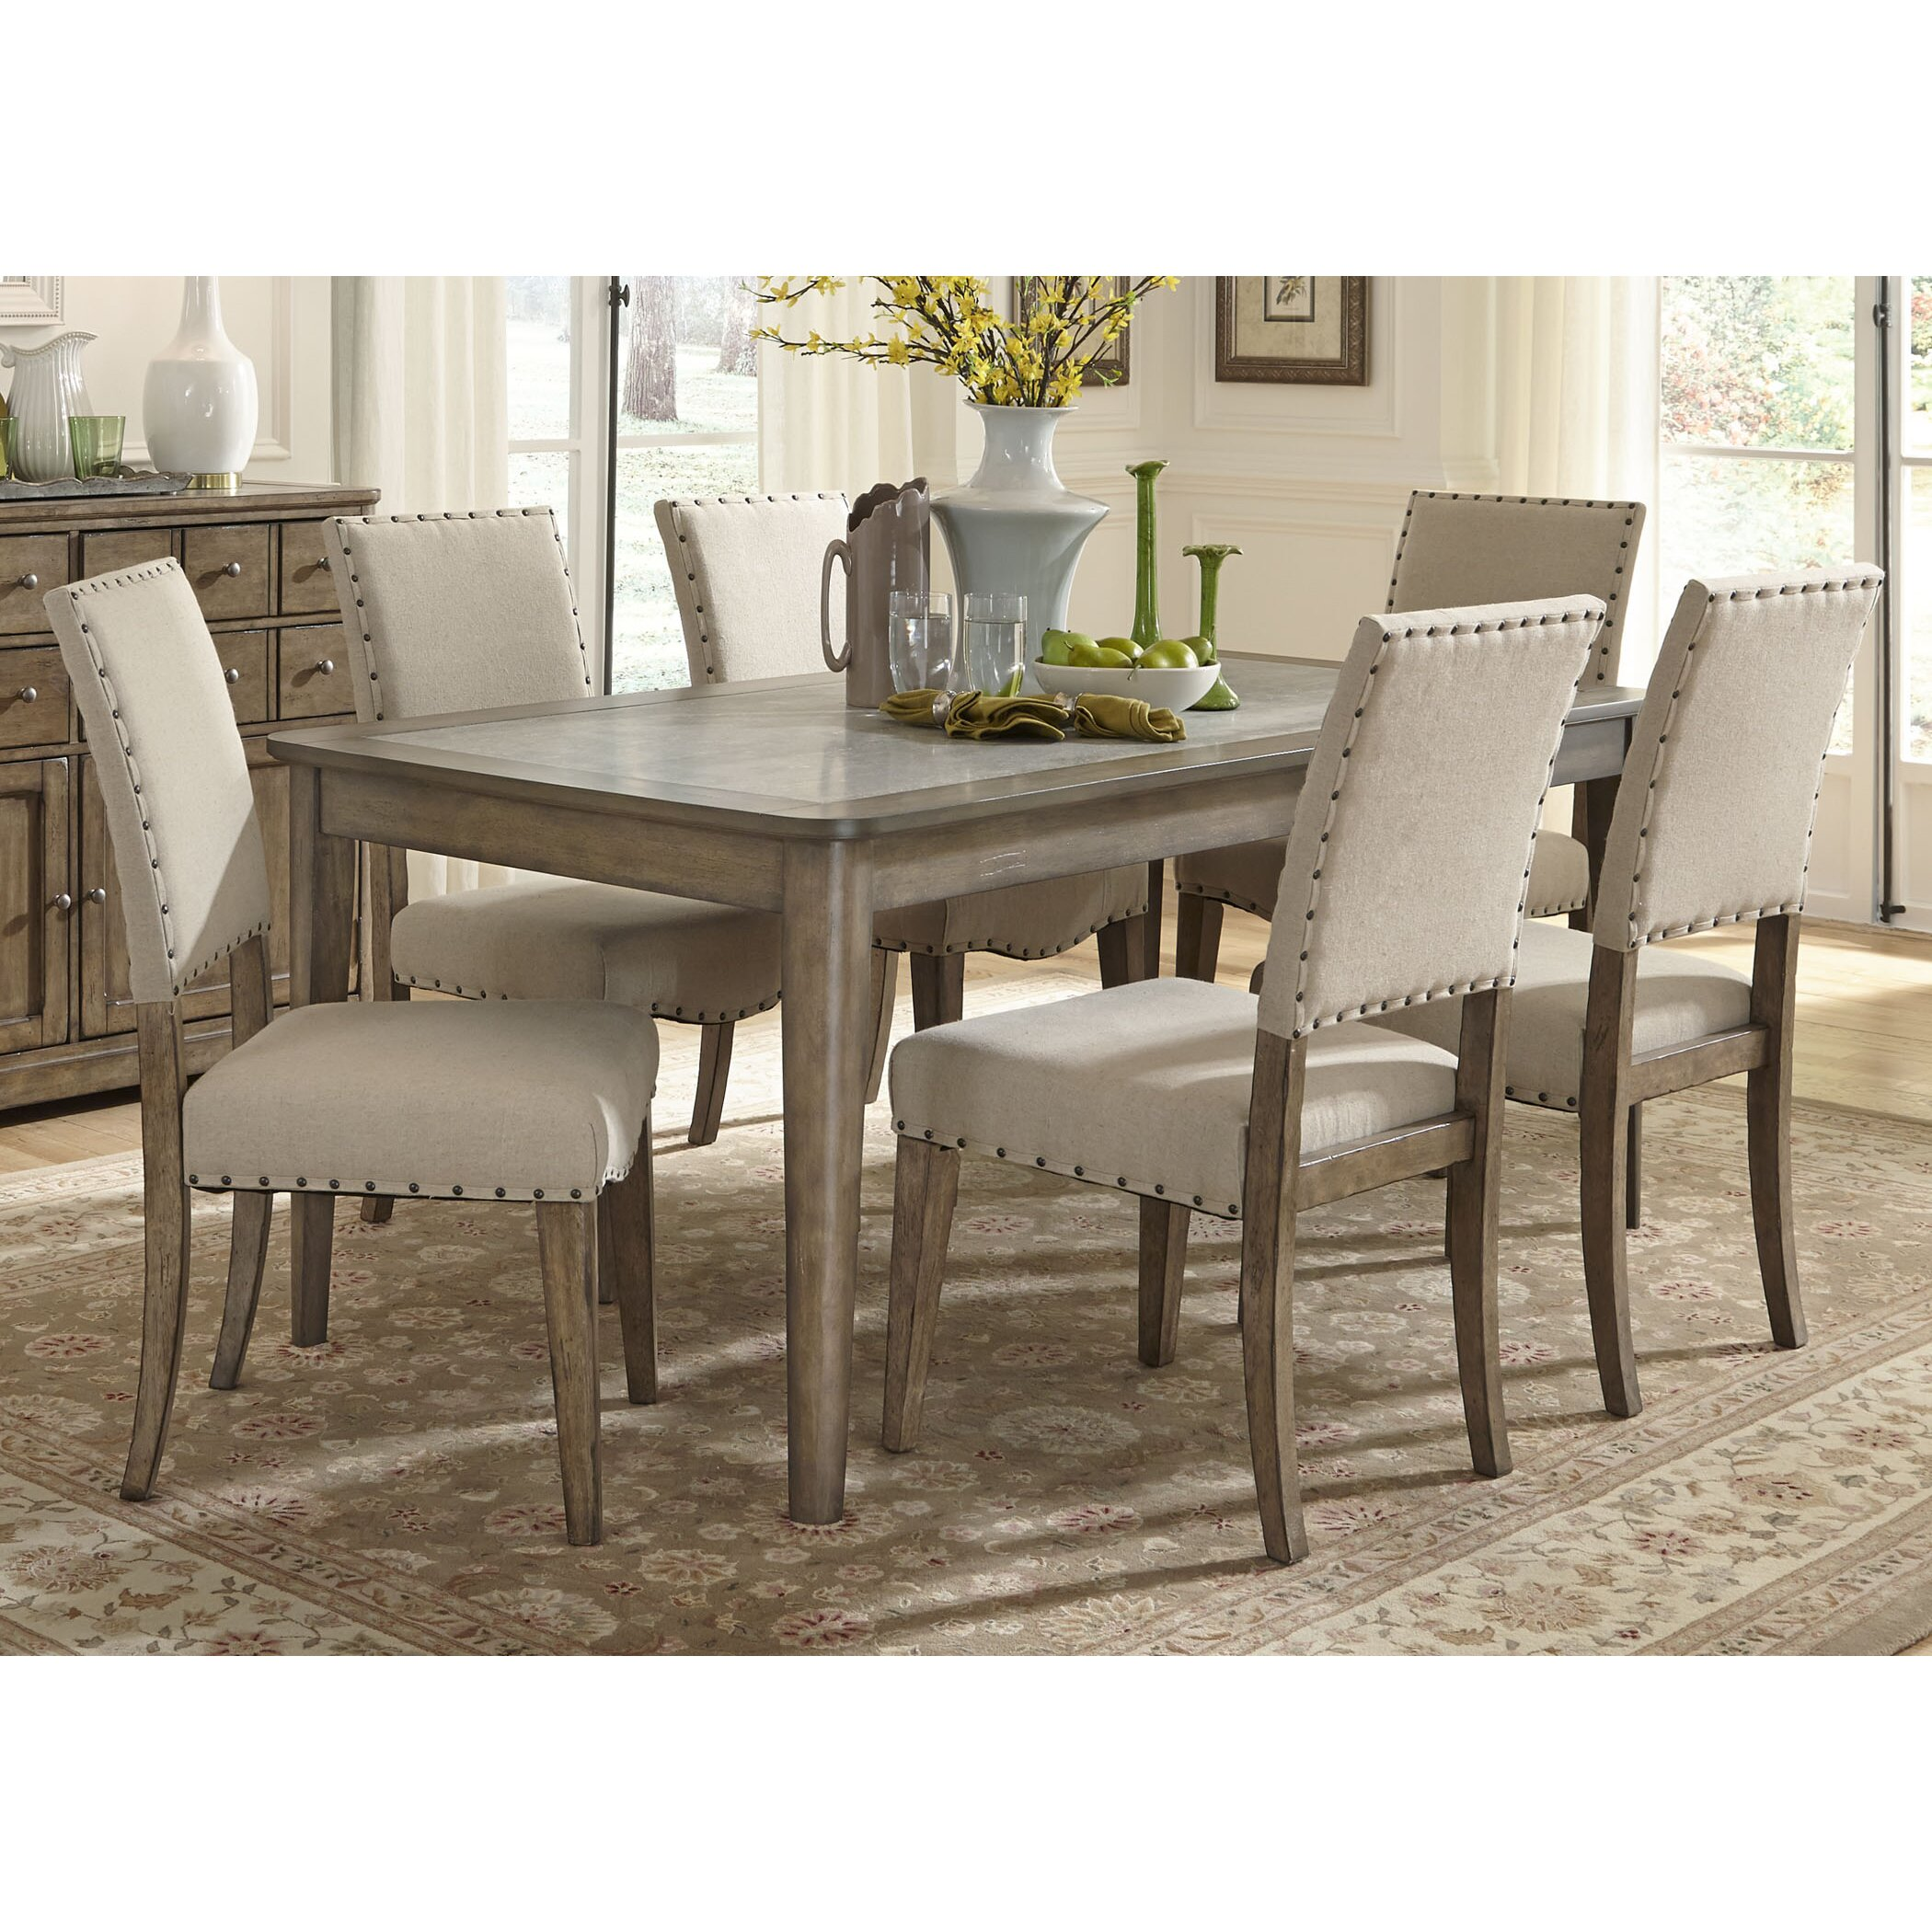 Liberty Furniture Weatherford Leg Dining Table amp Reviews  : Leg Dining Table 645 T3872 from www.wayfair.com size 2100 x 2100 jpeg 825kB